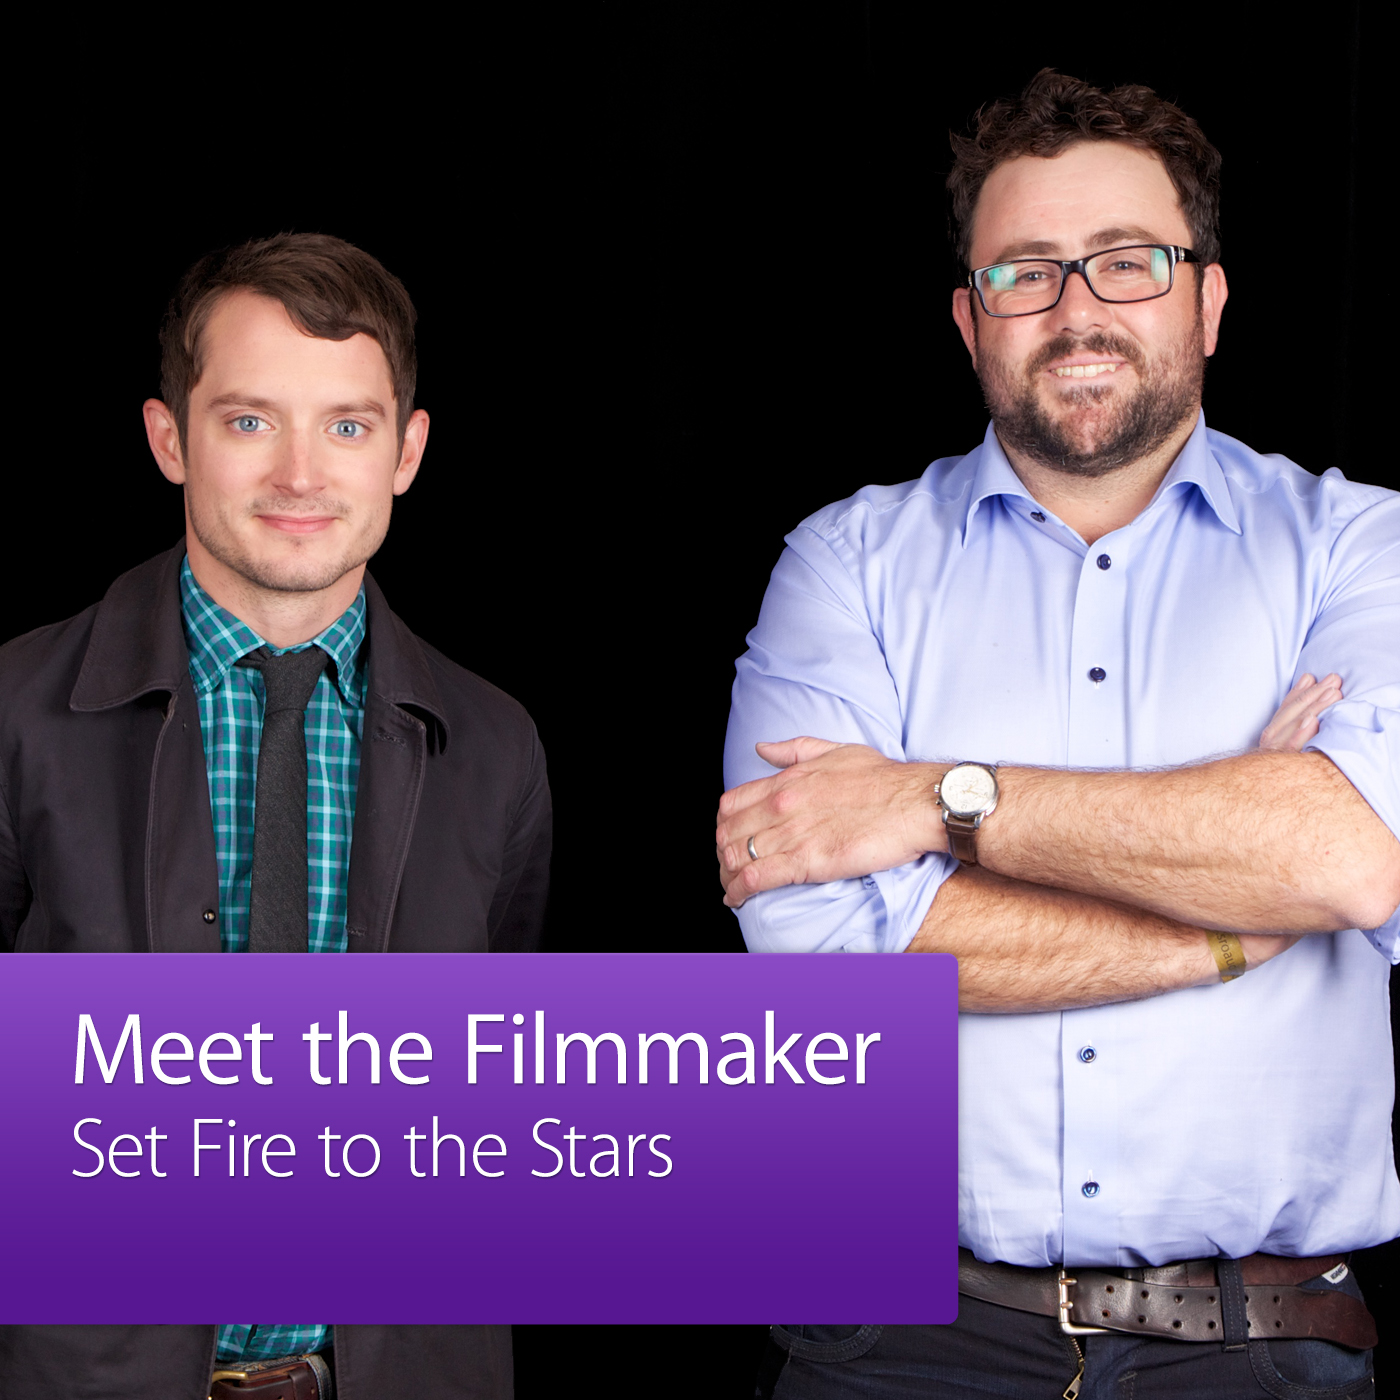 Set Fire to the Stars: Meet the Filmmaker